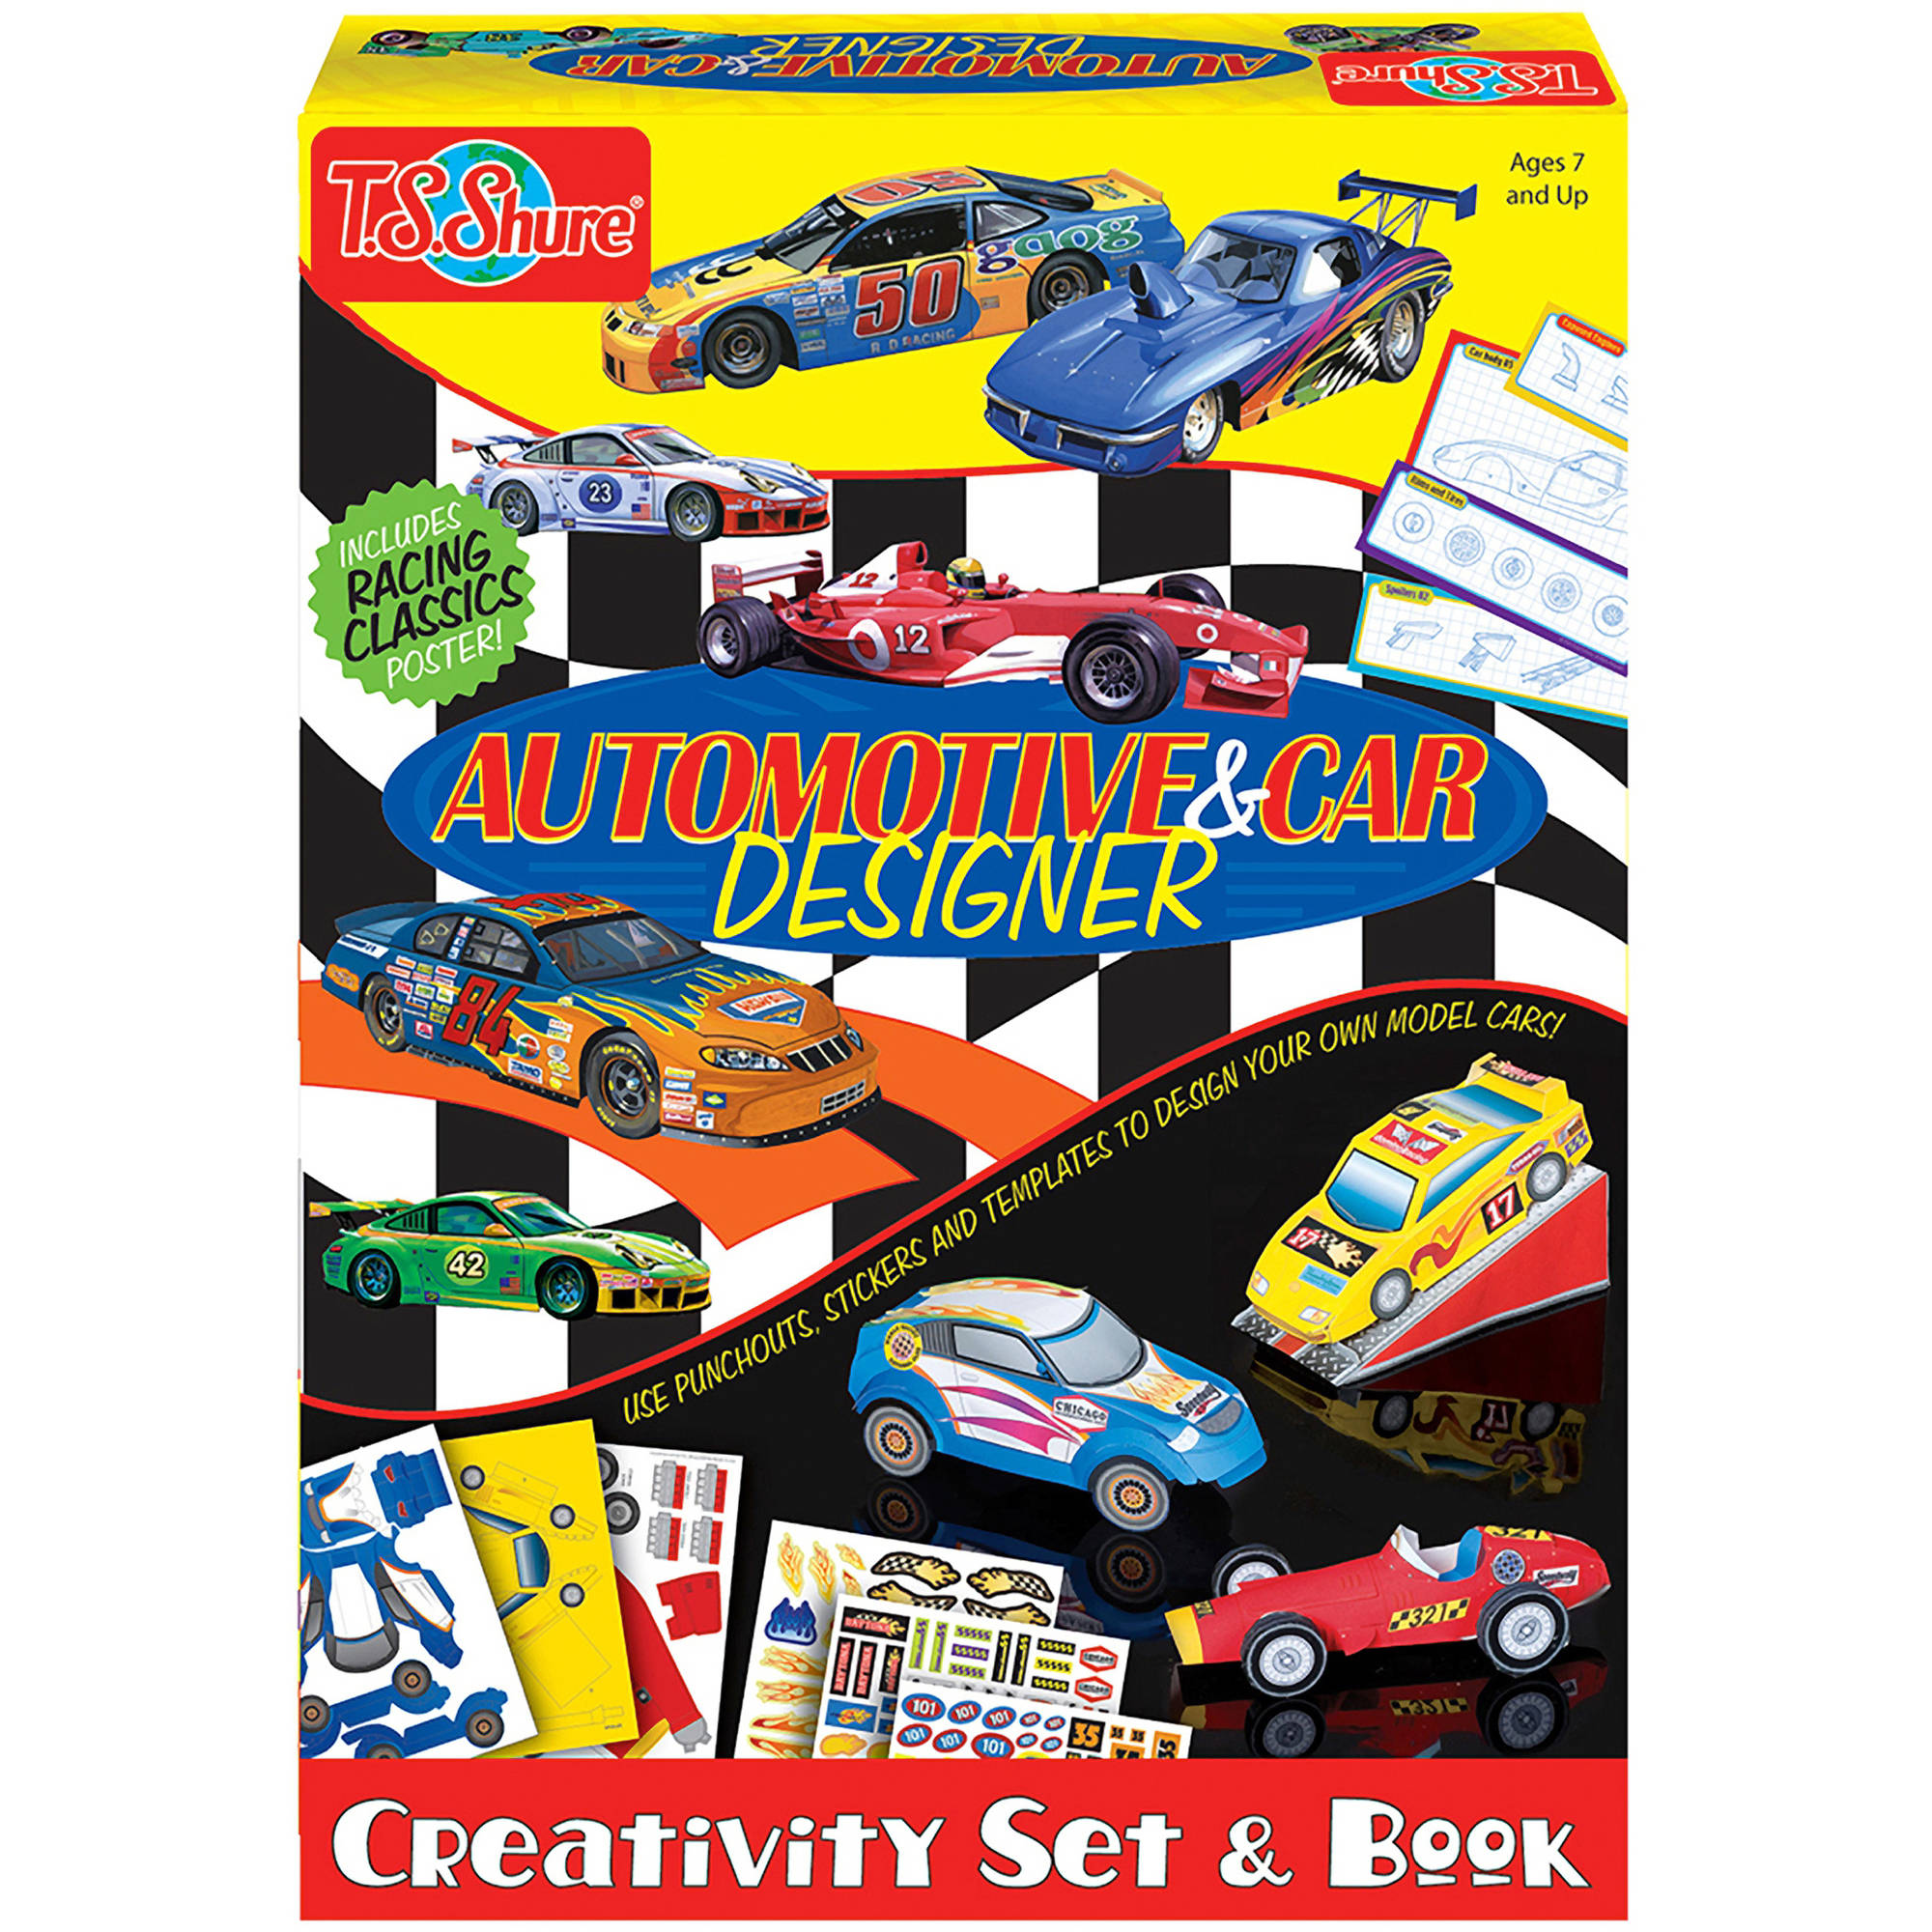 T.S. Shure Automotive and Car Designer Creativity Set and Book